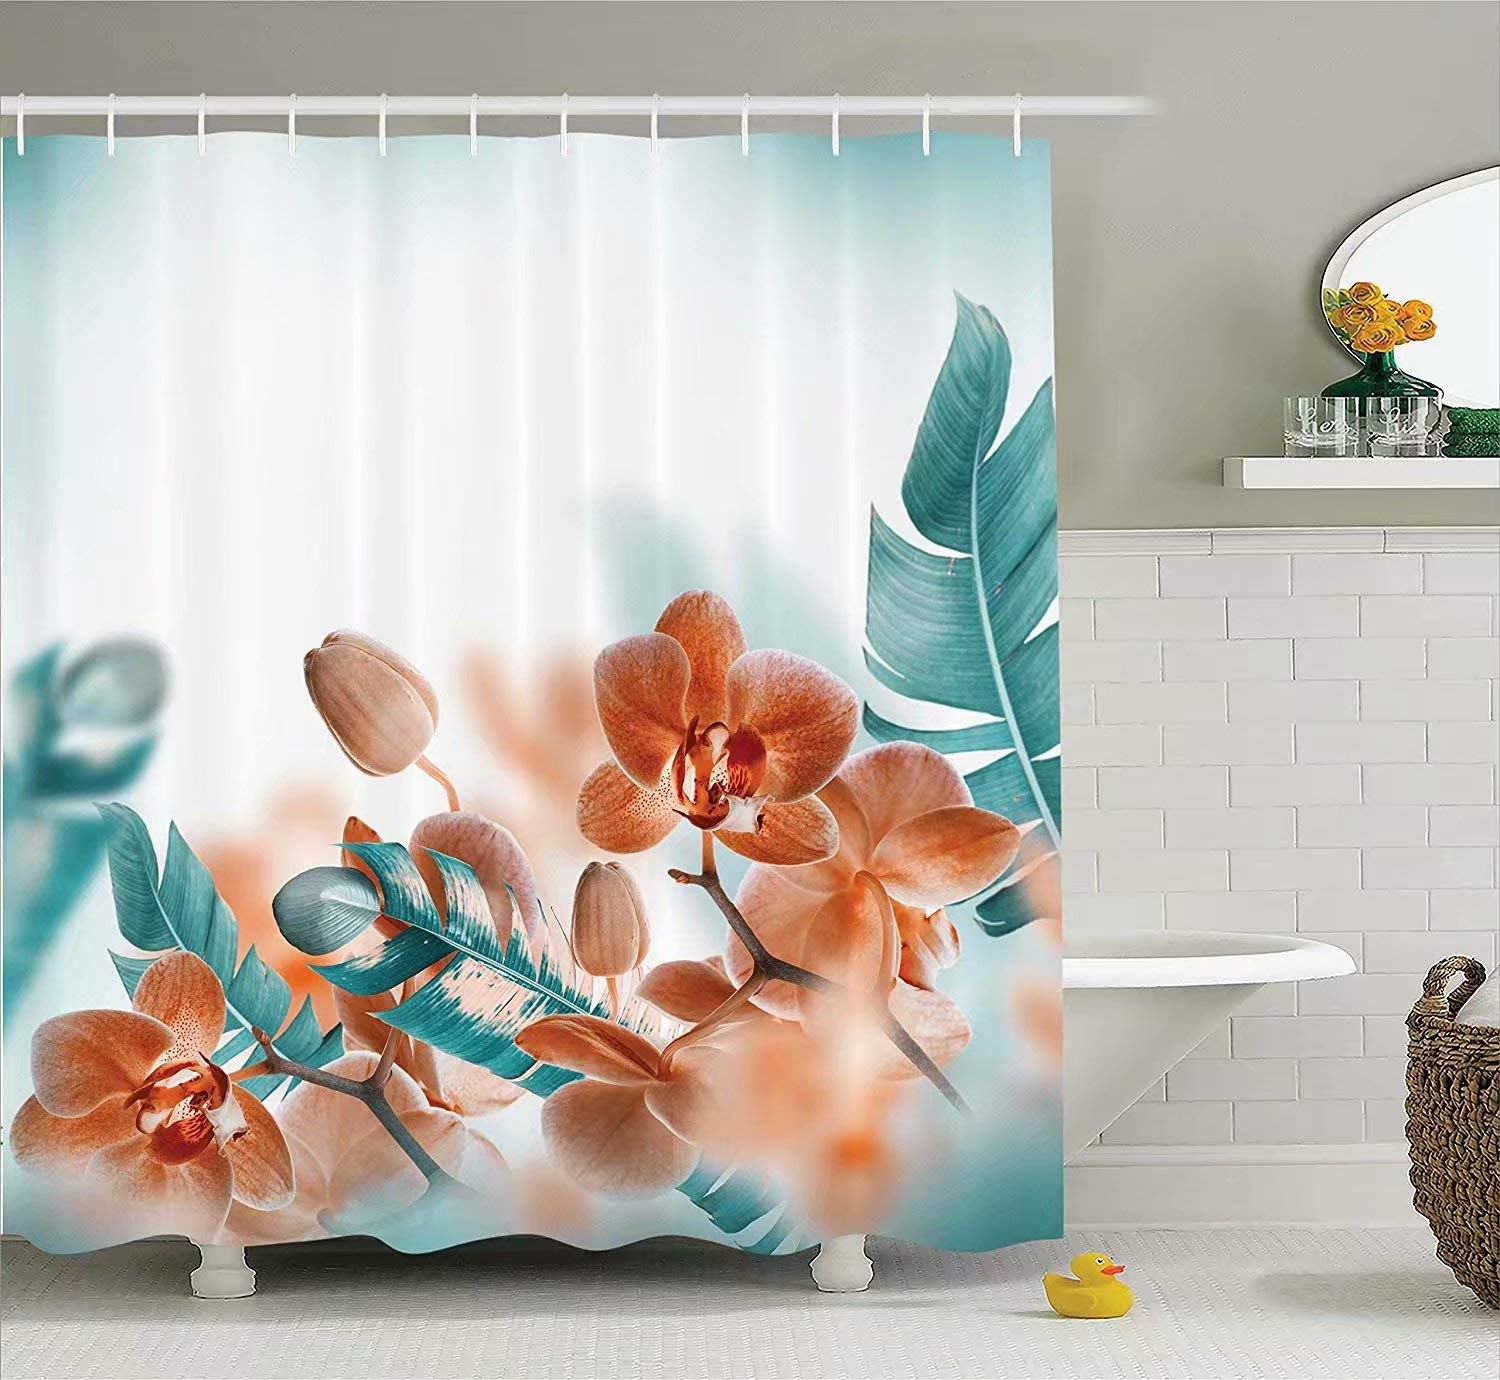 KANATSIU Tropical Orchids Blossom Leaves on Blurred Background Floral Themed Shower Curtain 12 plactic Hooks,100% Made Polyester,Mildew Resistant & Machine Washable,Width x Height is 60x72